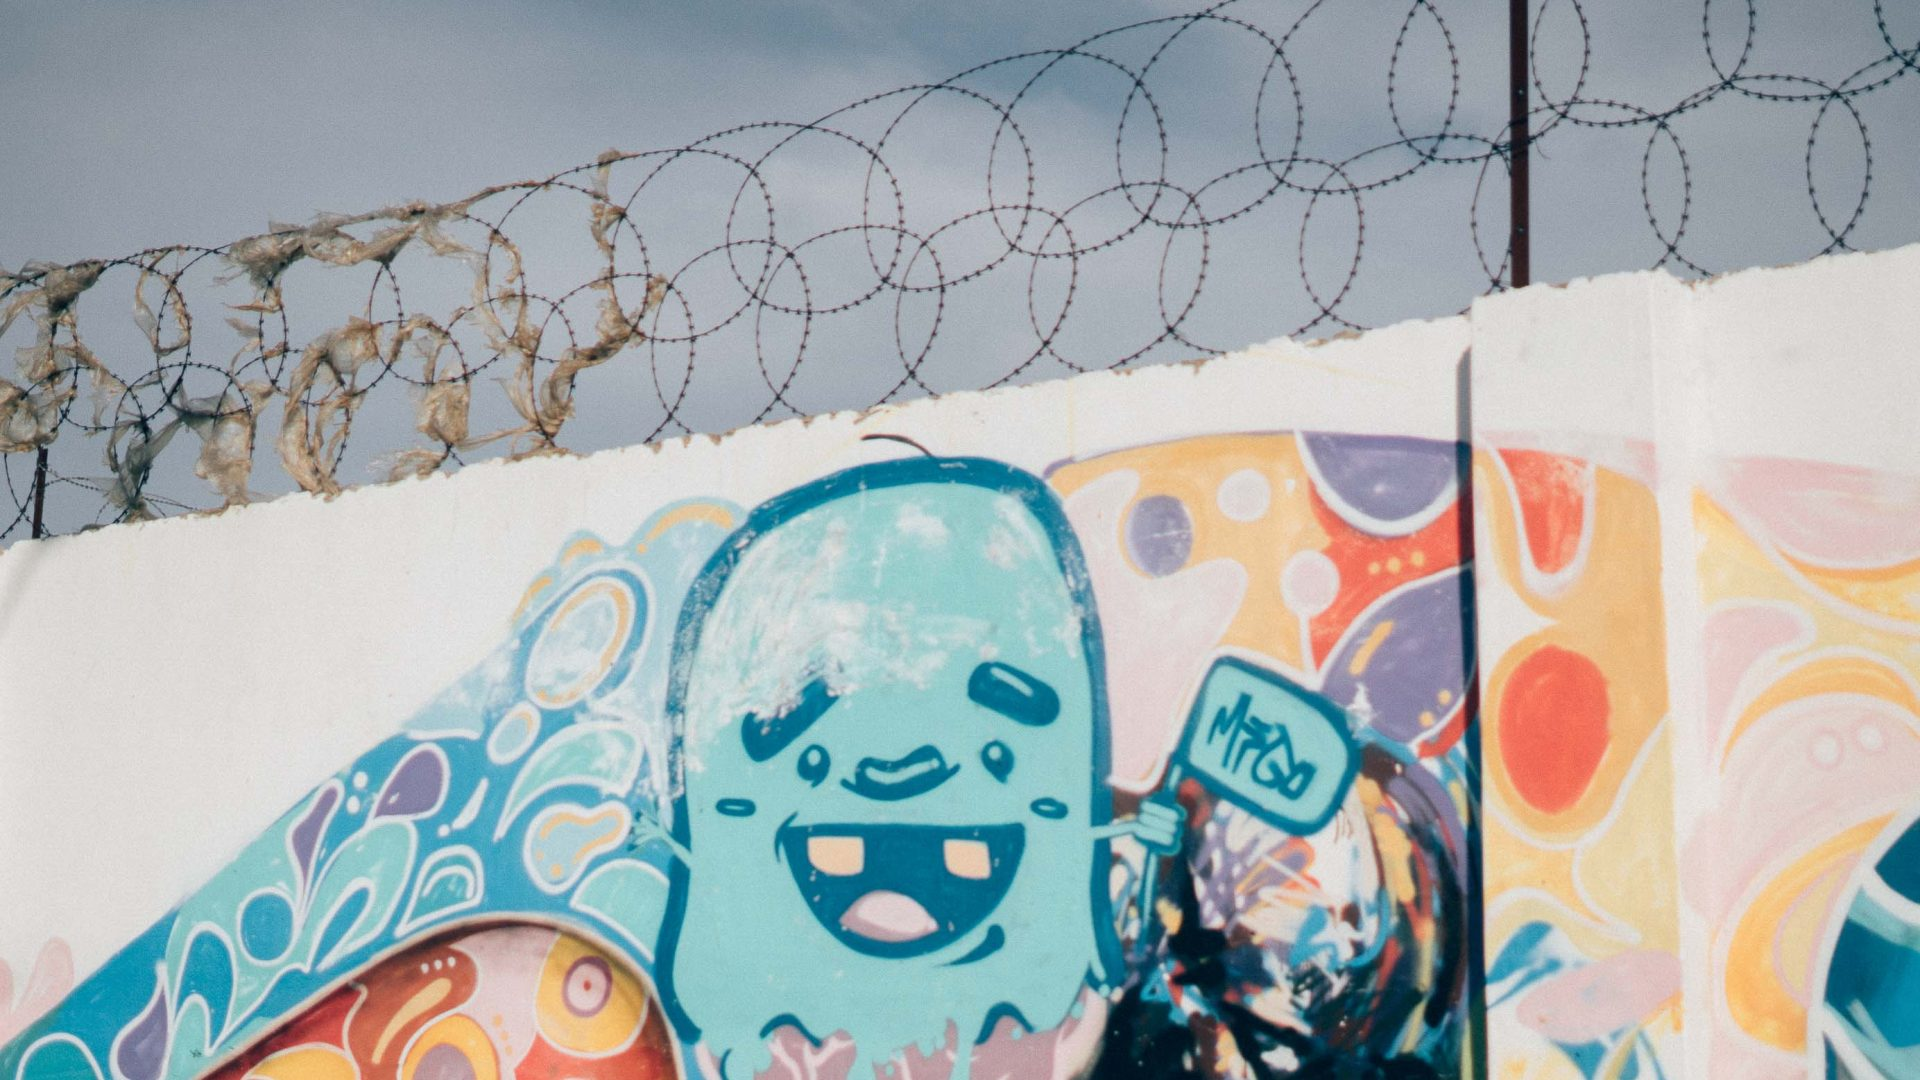 Graffiti adorns a barbed wire-protected wall in Langa, Cape Town.